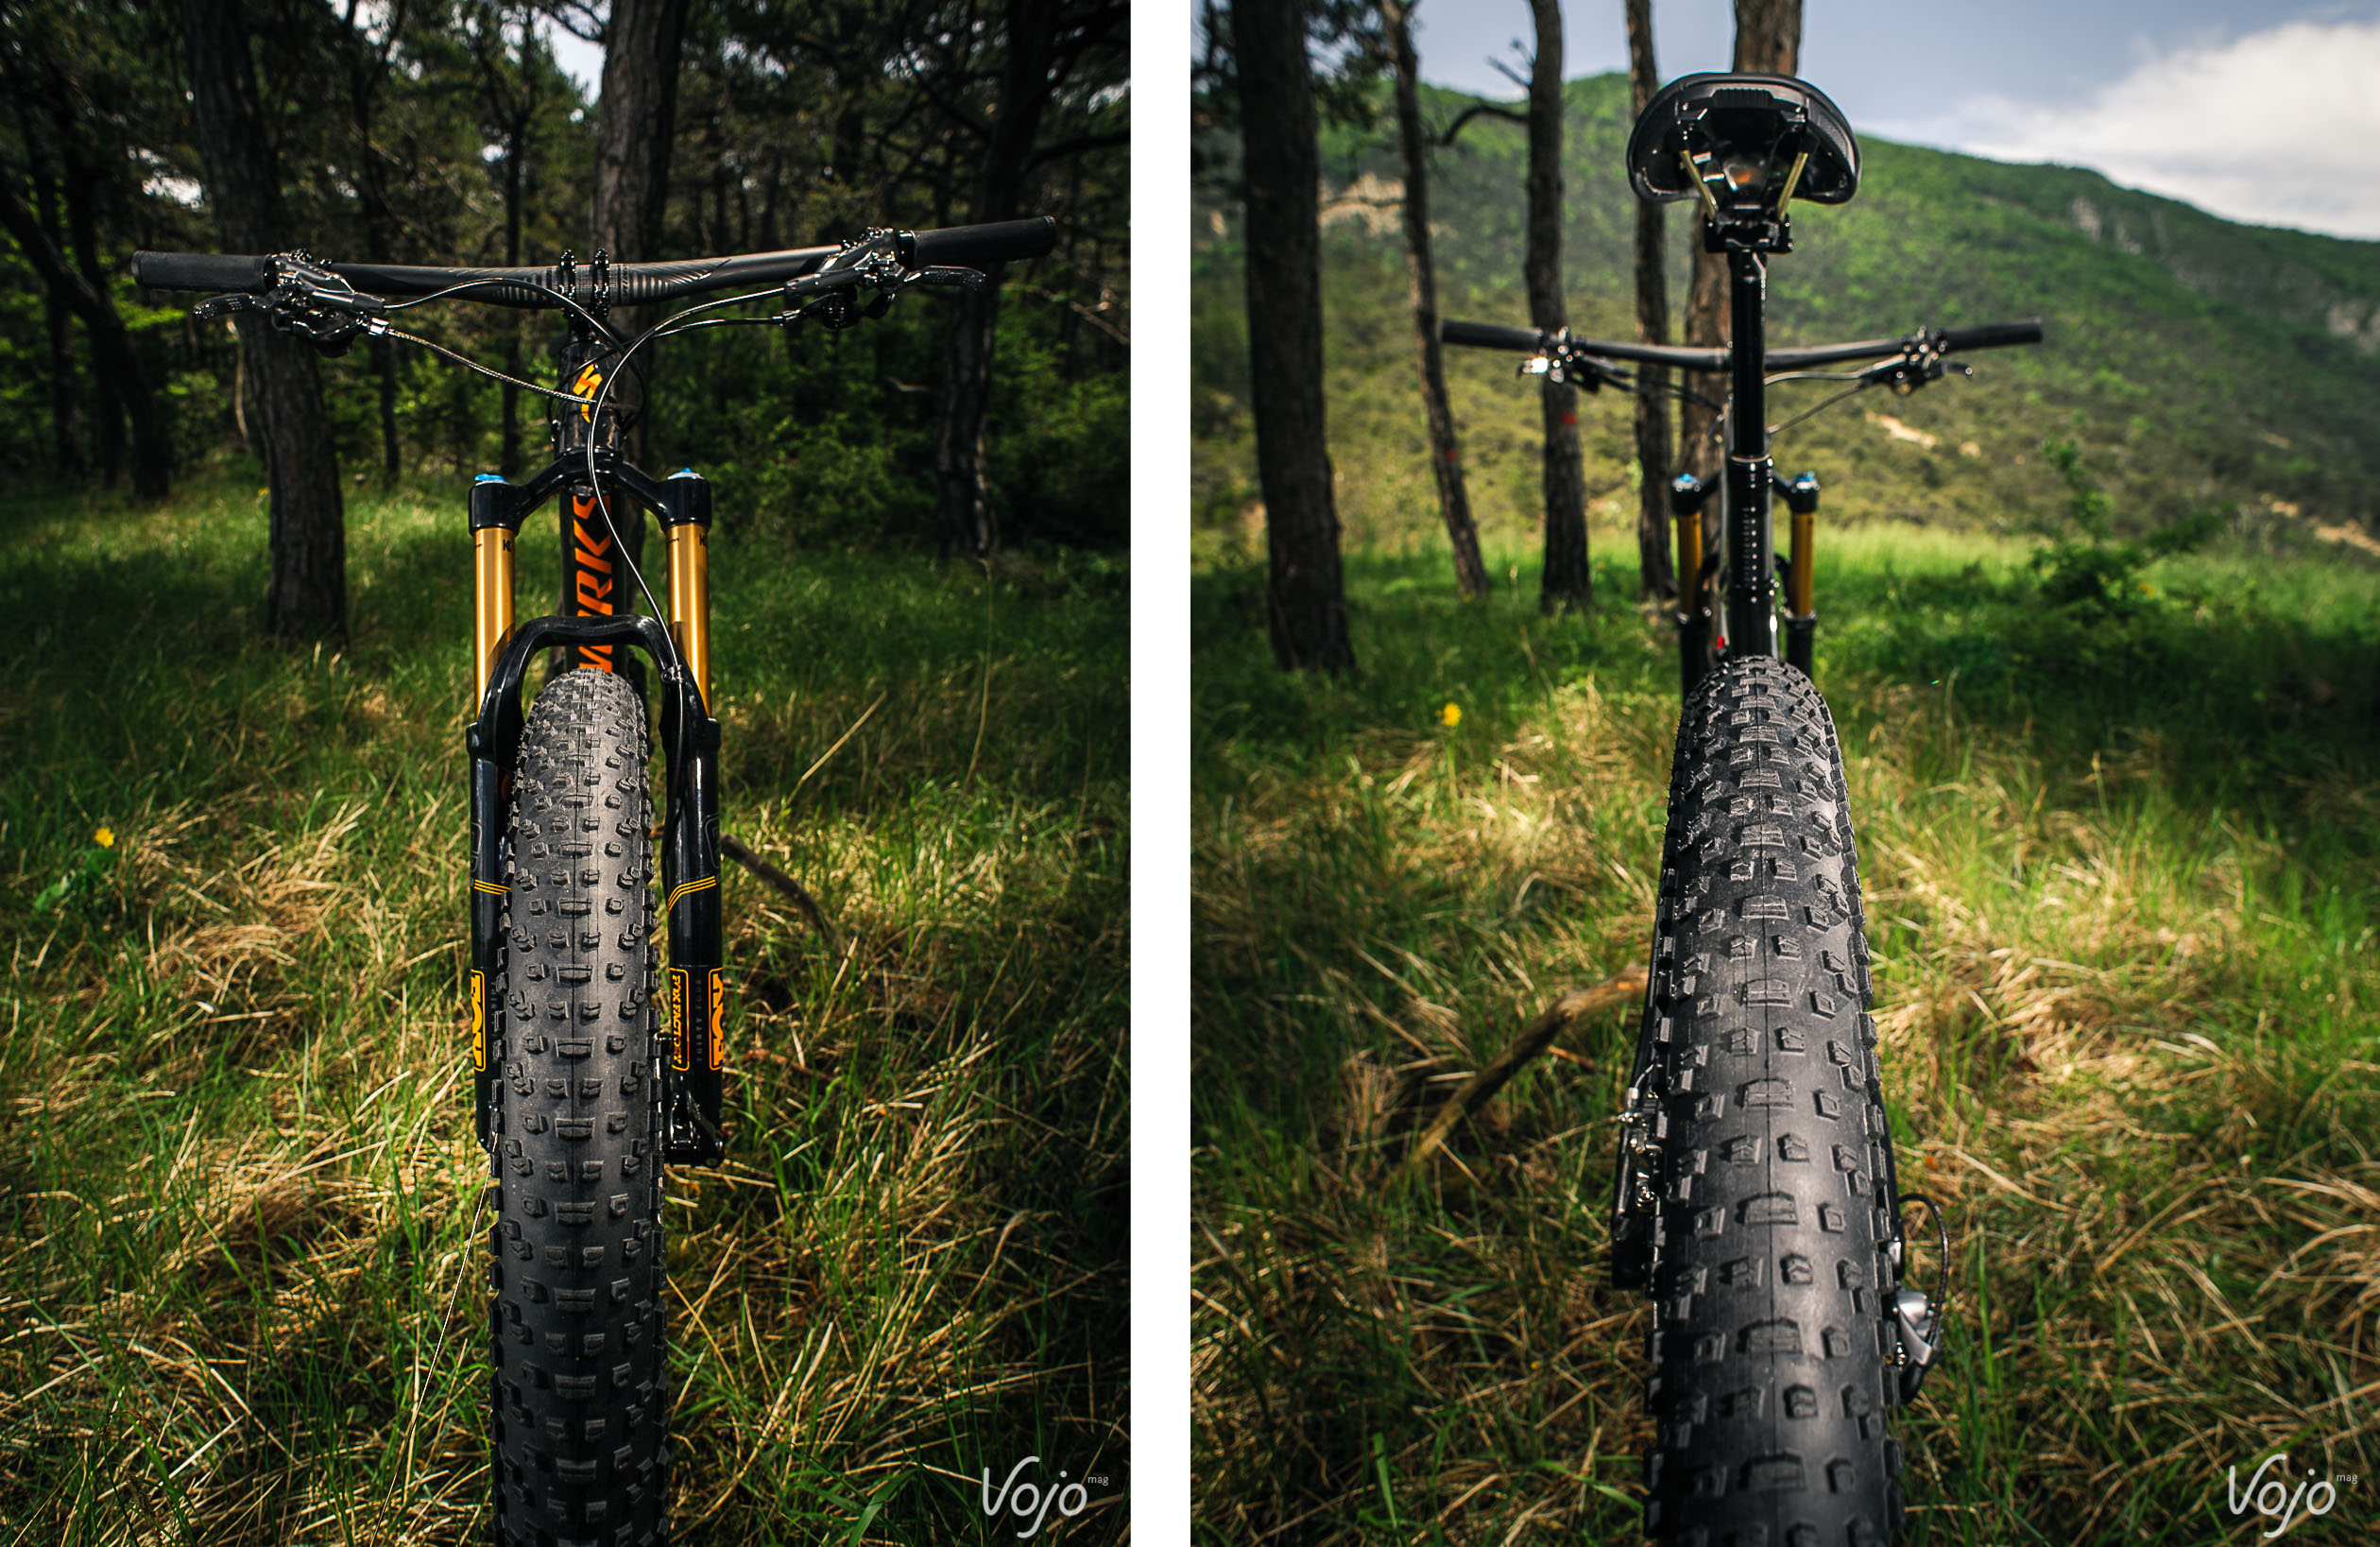 Compo_14_Specialized_Stumpjumper_2016_Swat_Copyright_OBeart_VojoMag-1